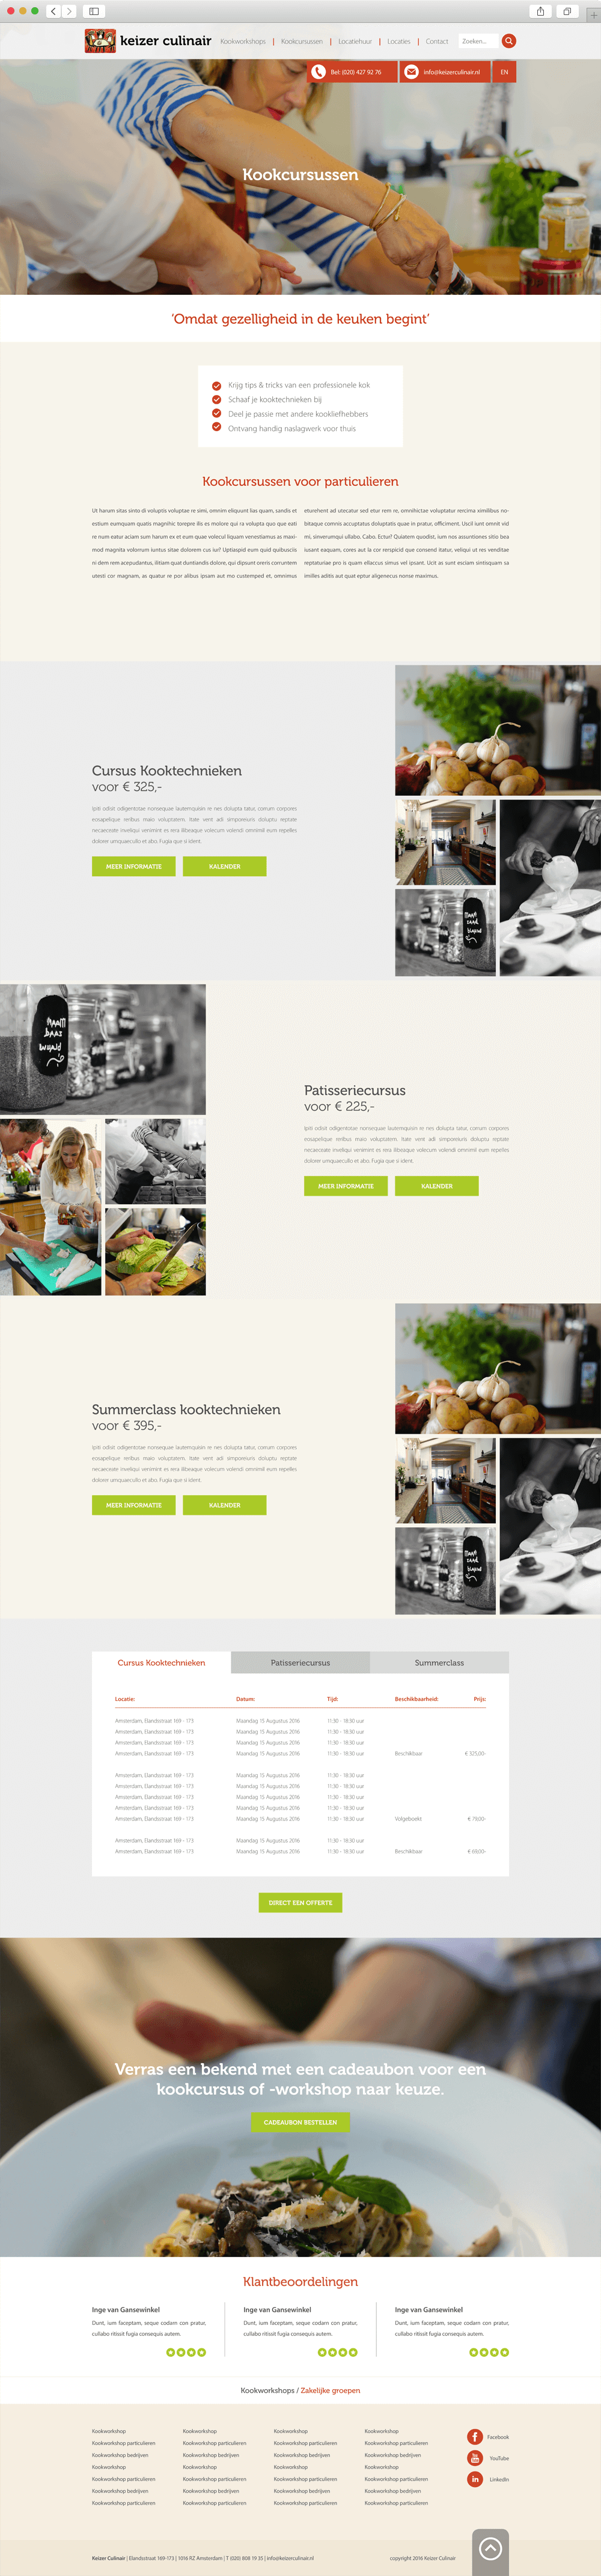 Keizer_Culinair_Page_Green_Creatives_03